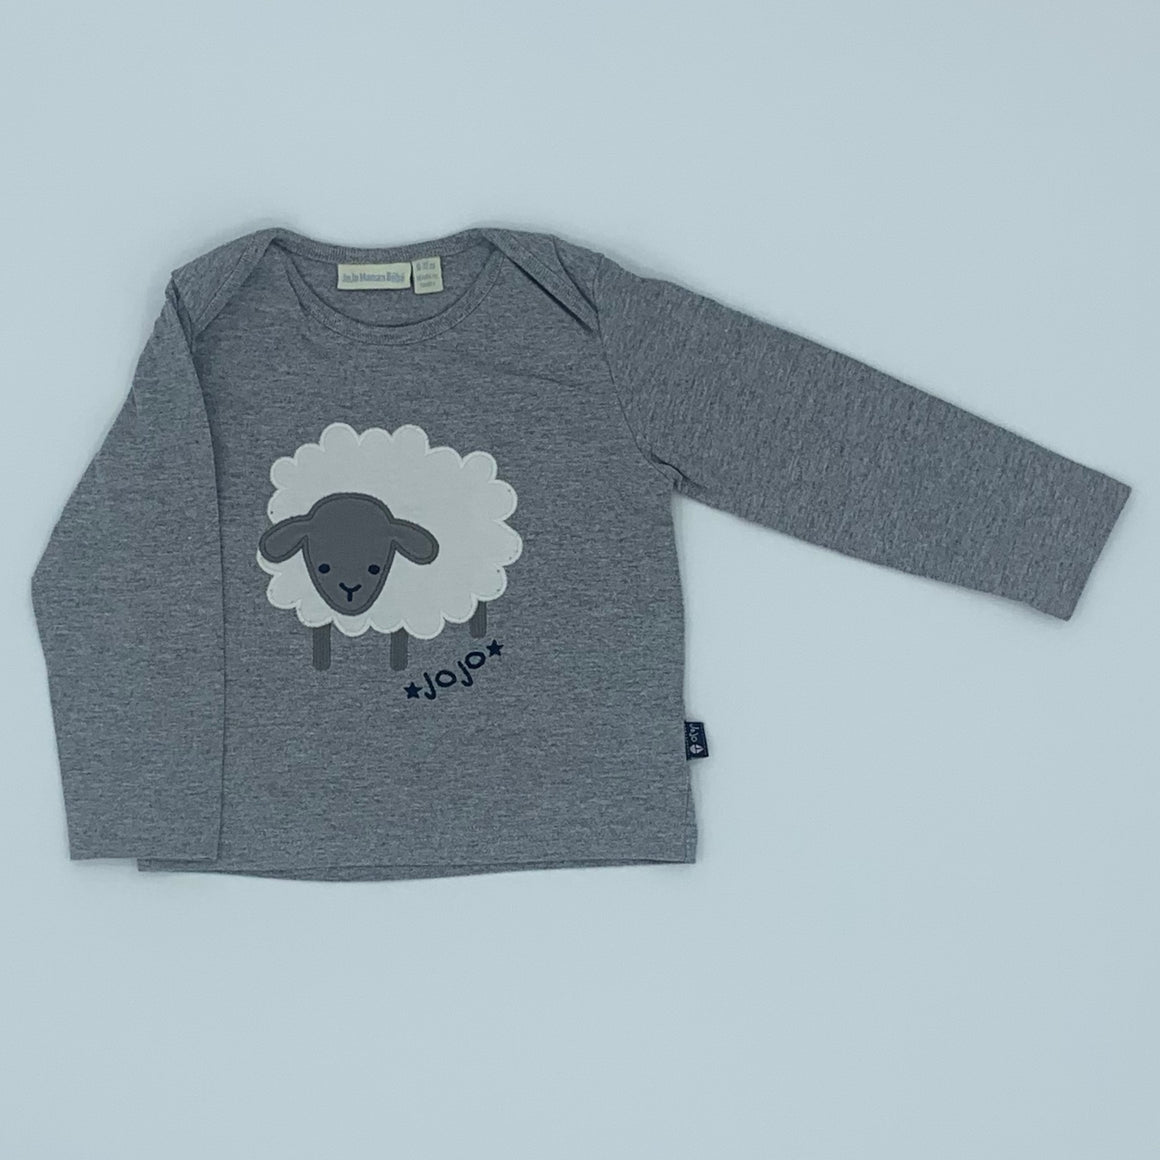 Gently Worn Jojo Maman Bebe sheep top size 6-12 months